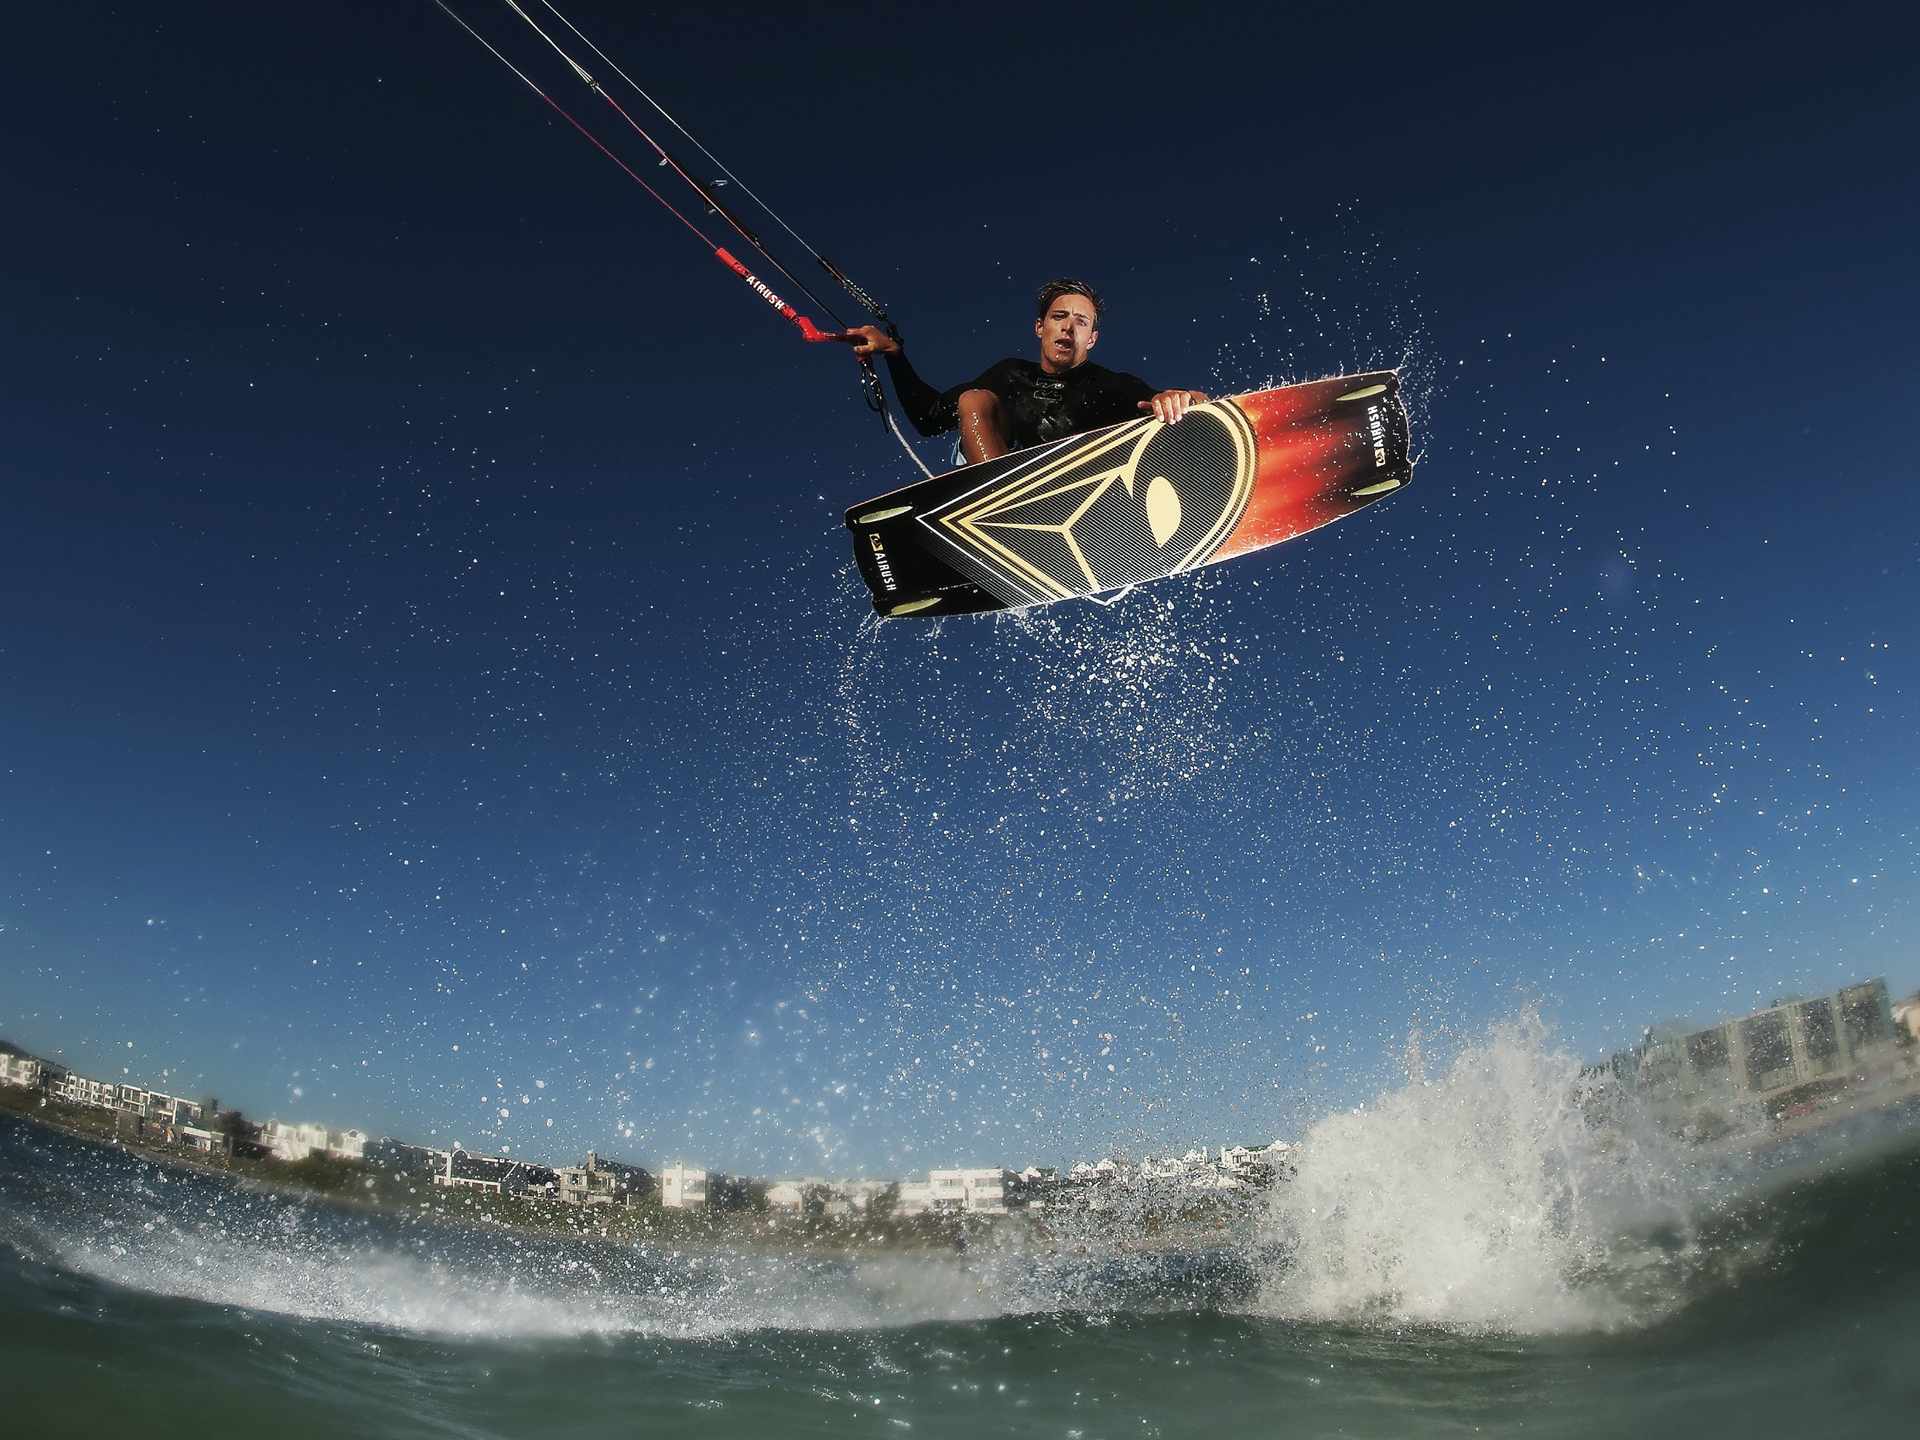 kitesurf wallpaper image - Oswald Smith with a nice Indie Grab at twilight - in resolution: Standard 4:3 1920 X 1440